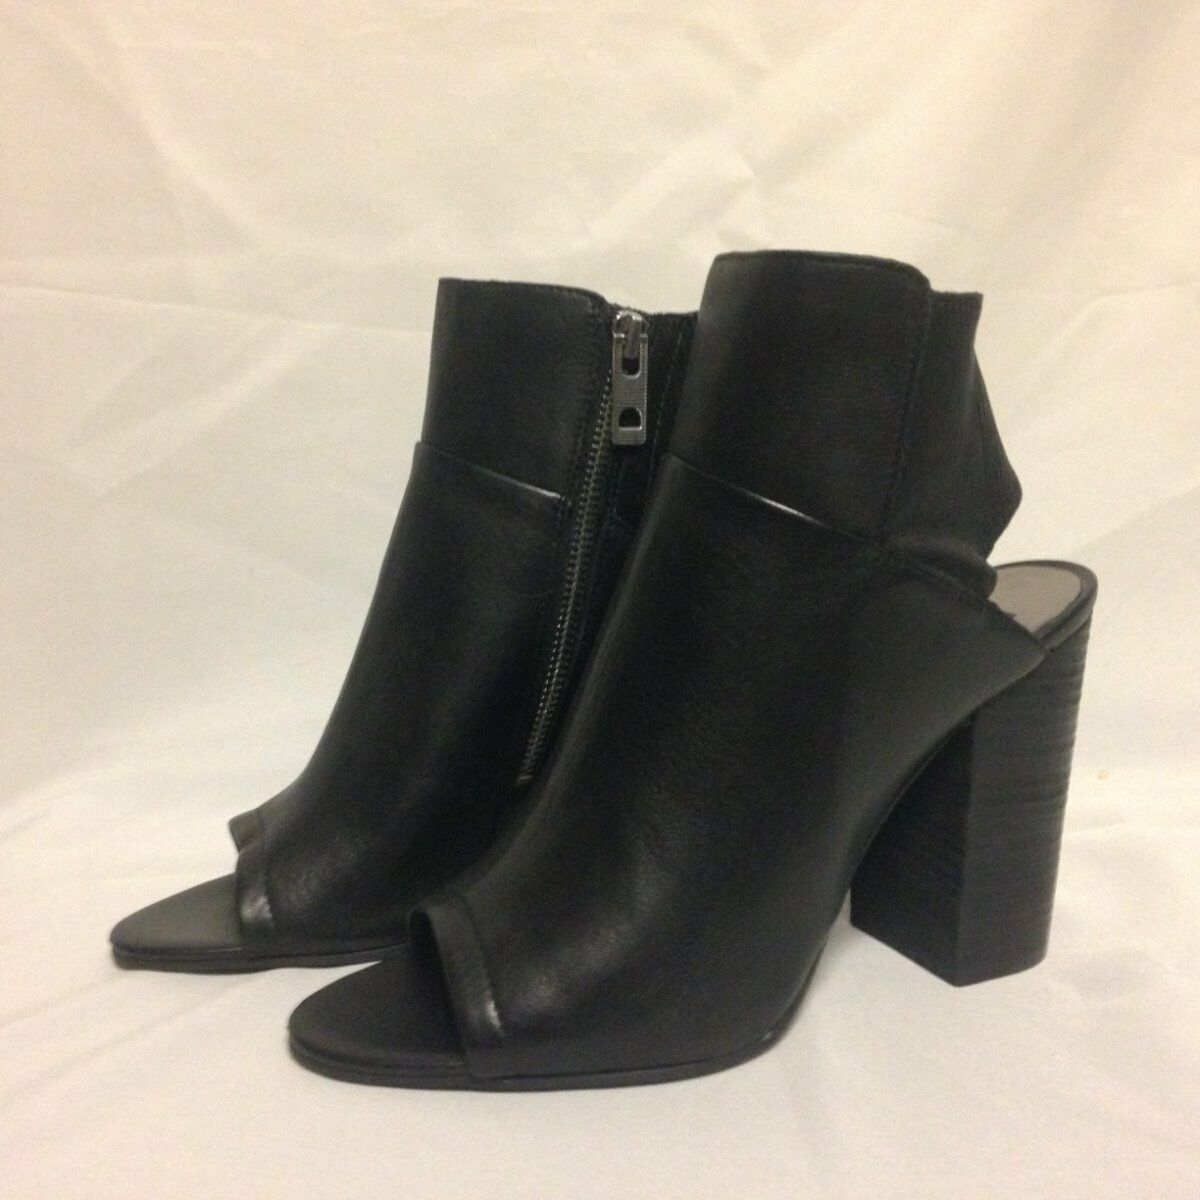 Dolce Vita Leka Open Toe Bootie Ankle Boot 10 M Black Leather  New w/Box